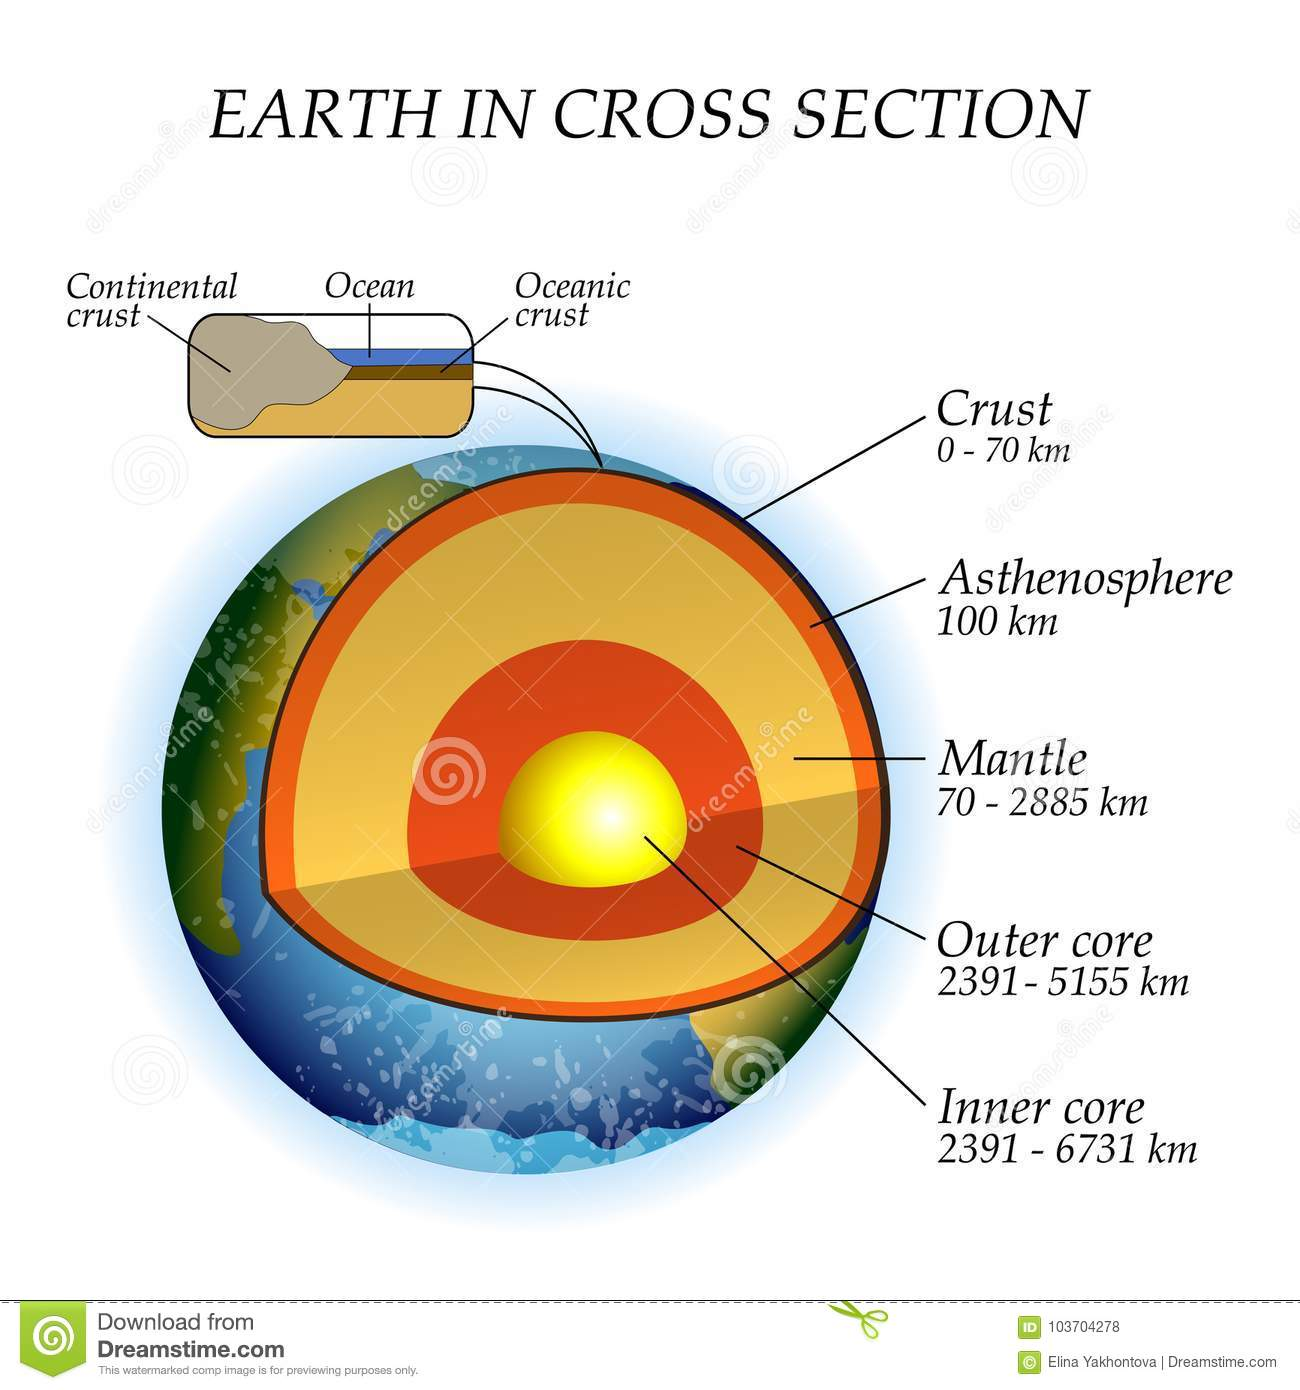 the structure of the earth in a cross section, the layers of the core,